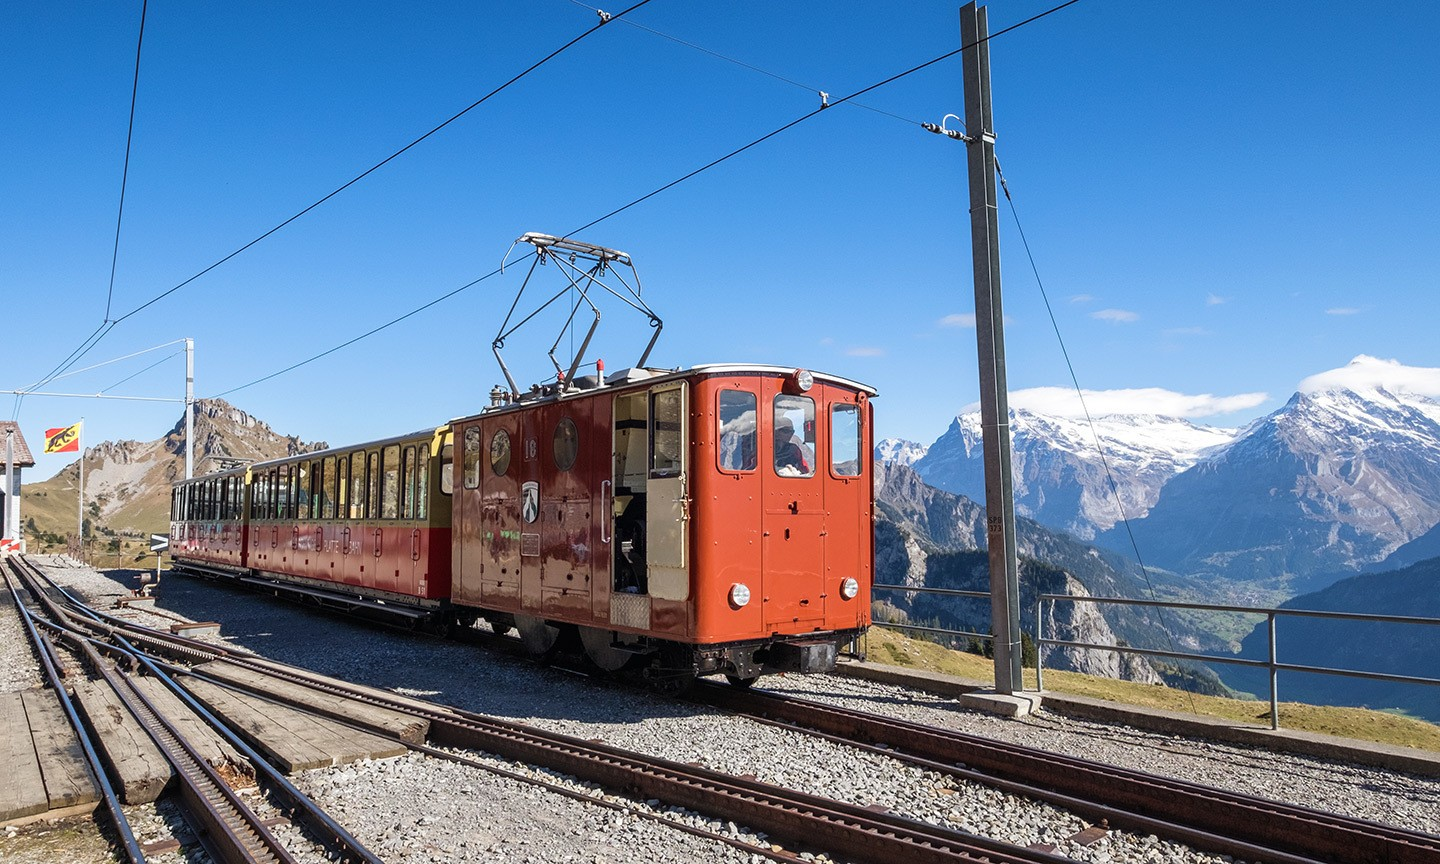 Train at Schynige Platte, Jungfrau, Switzerland